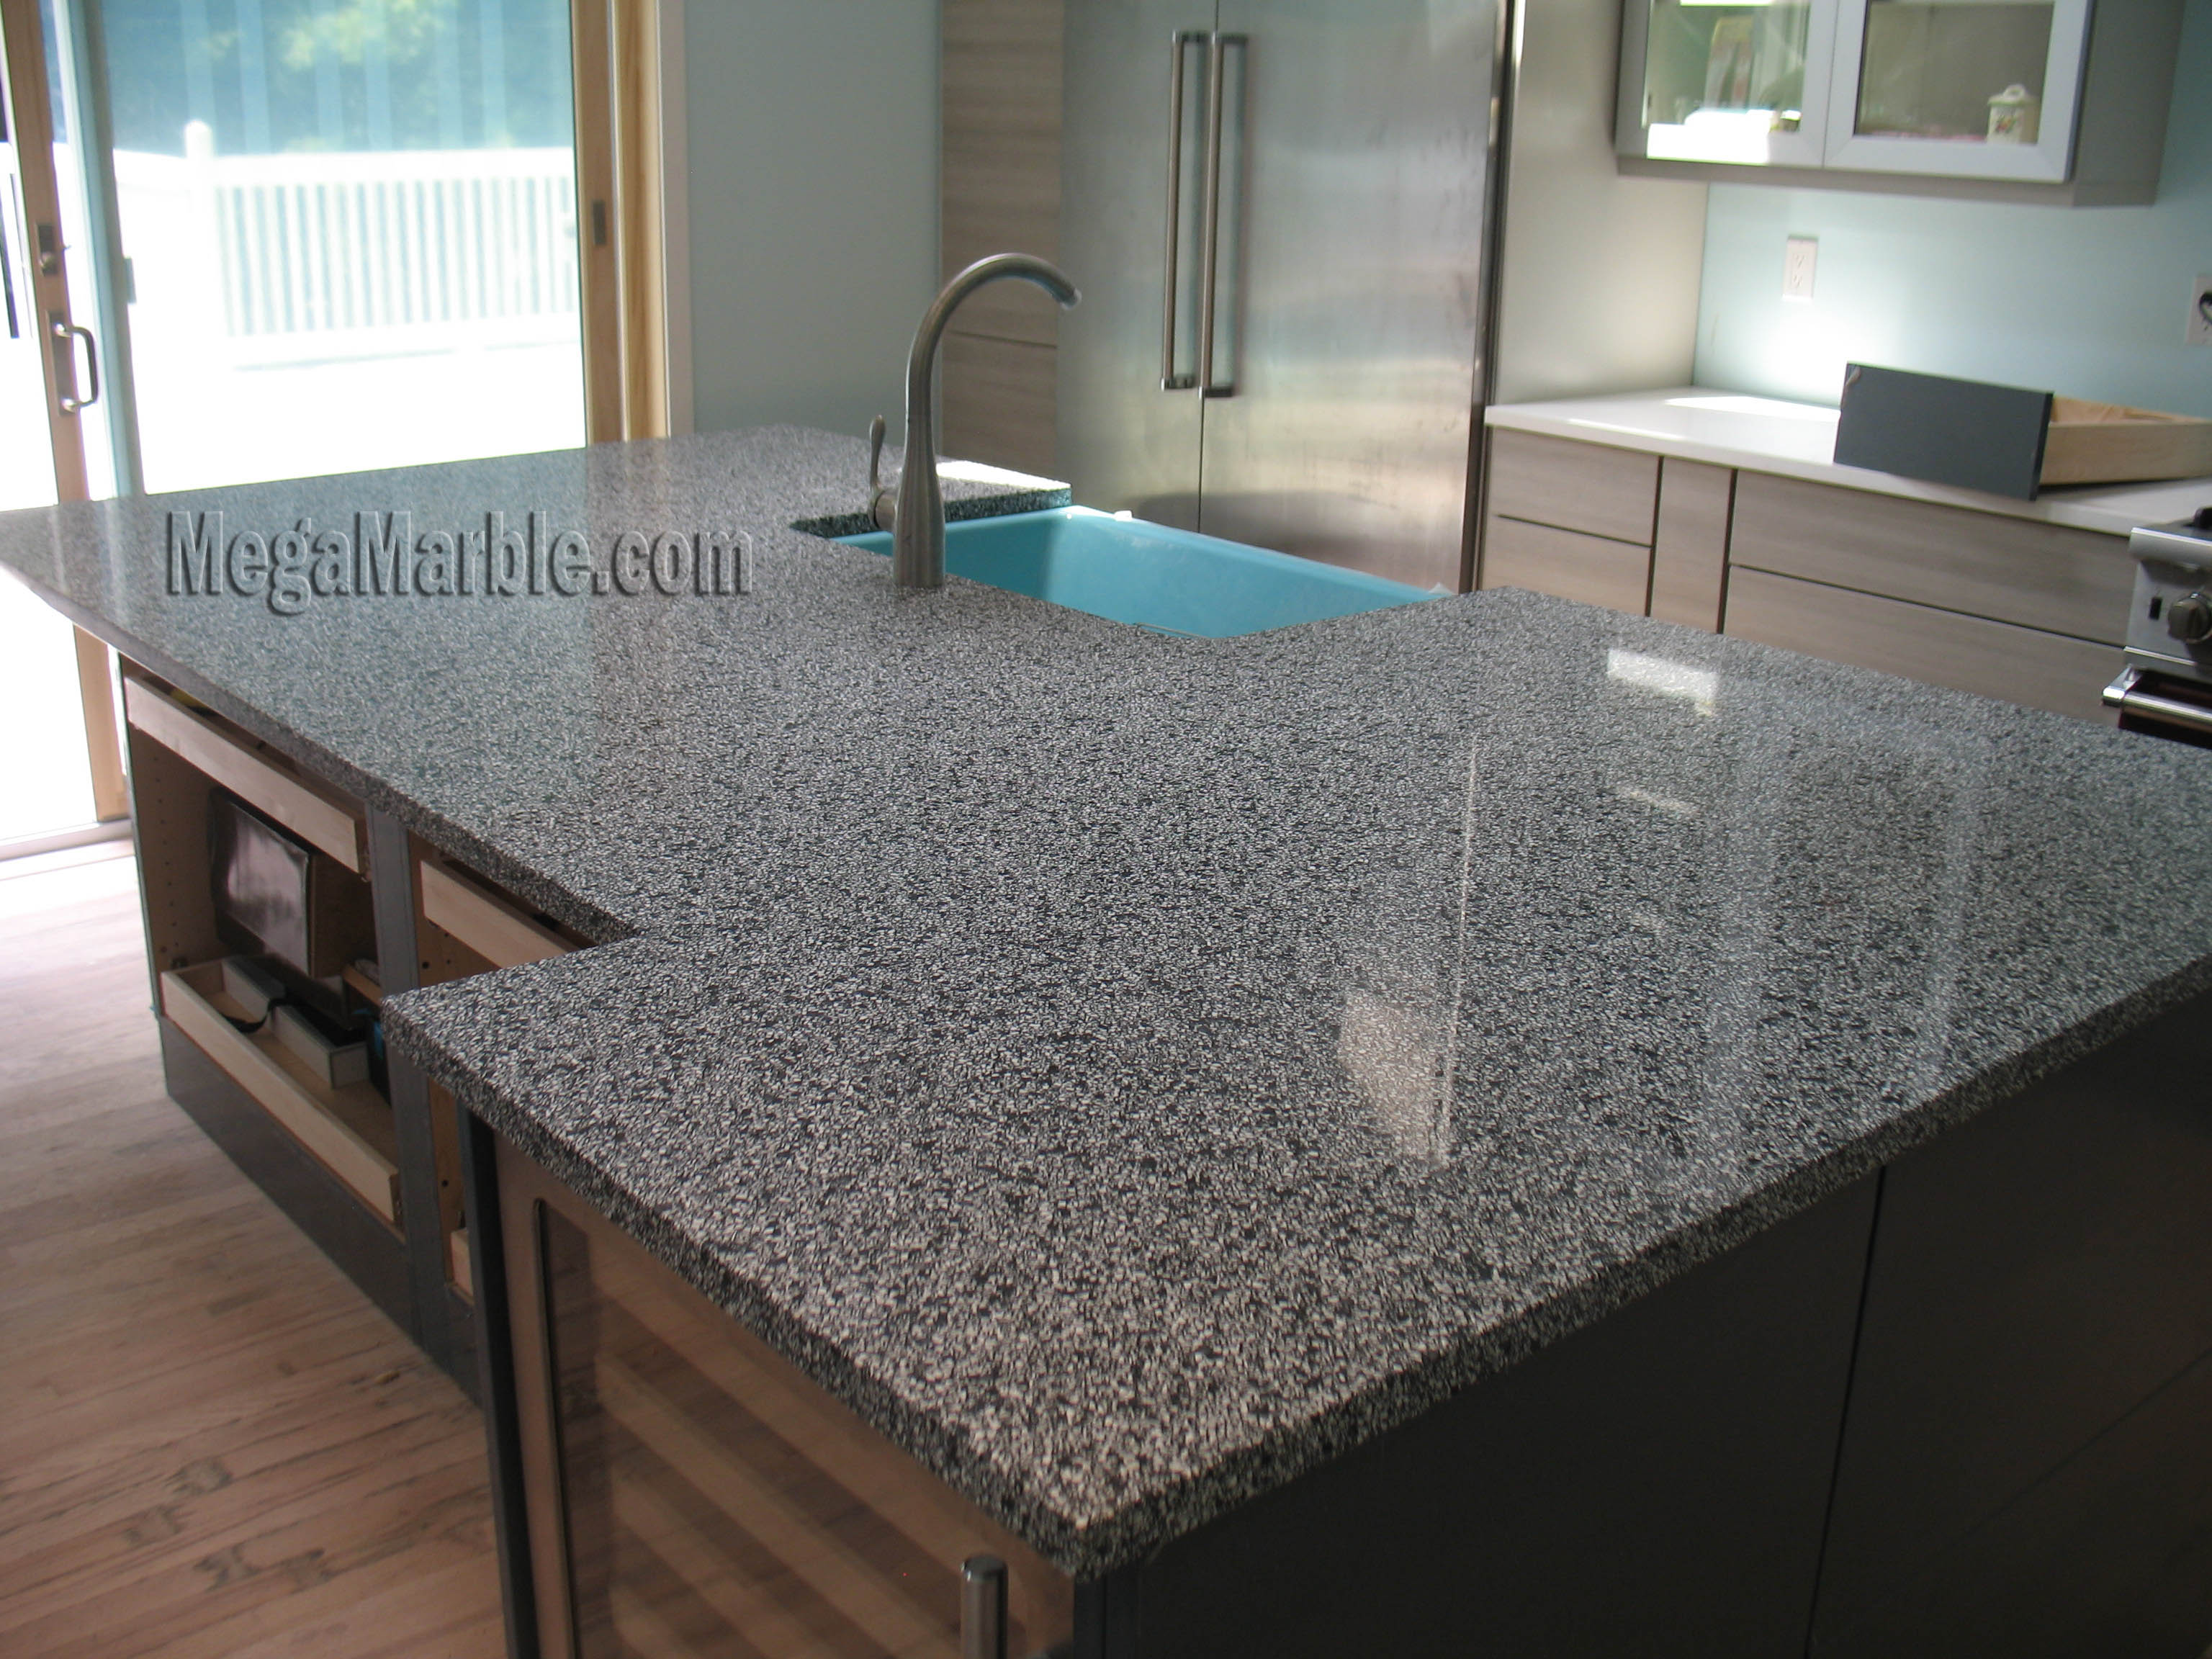 Kitchen Countertops design in The Hamptons NY – Countertops For